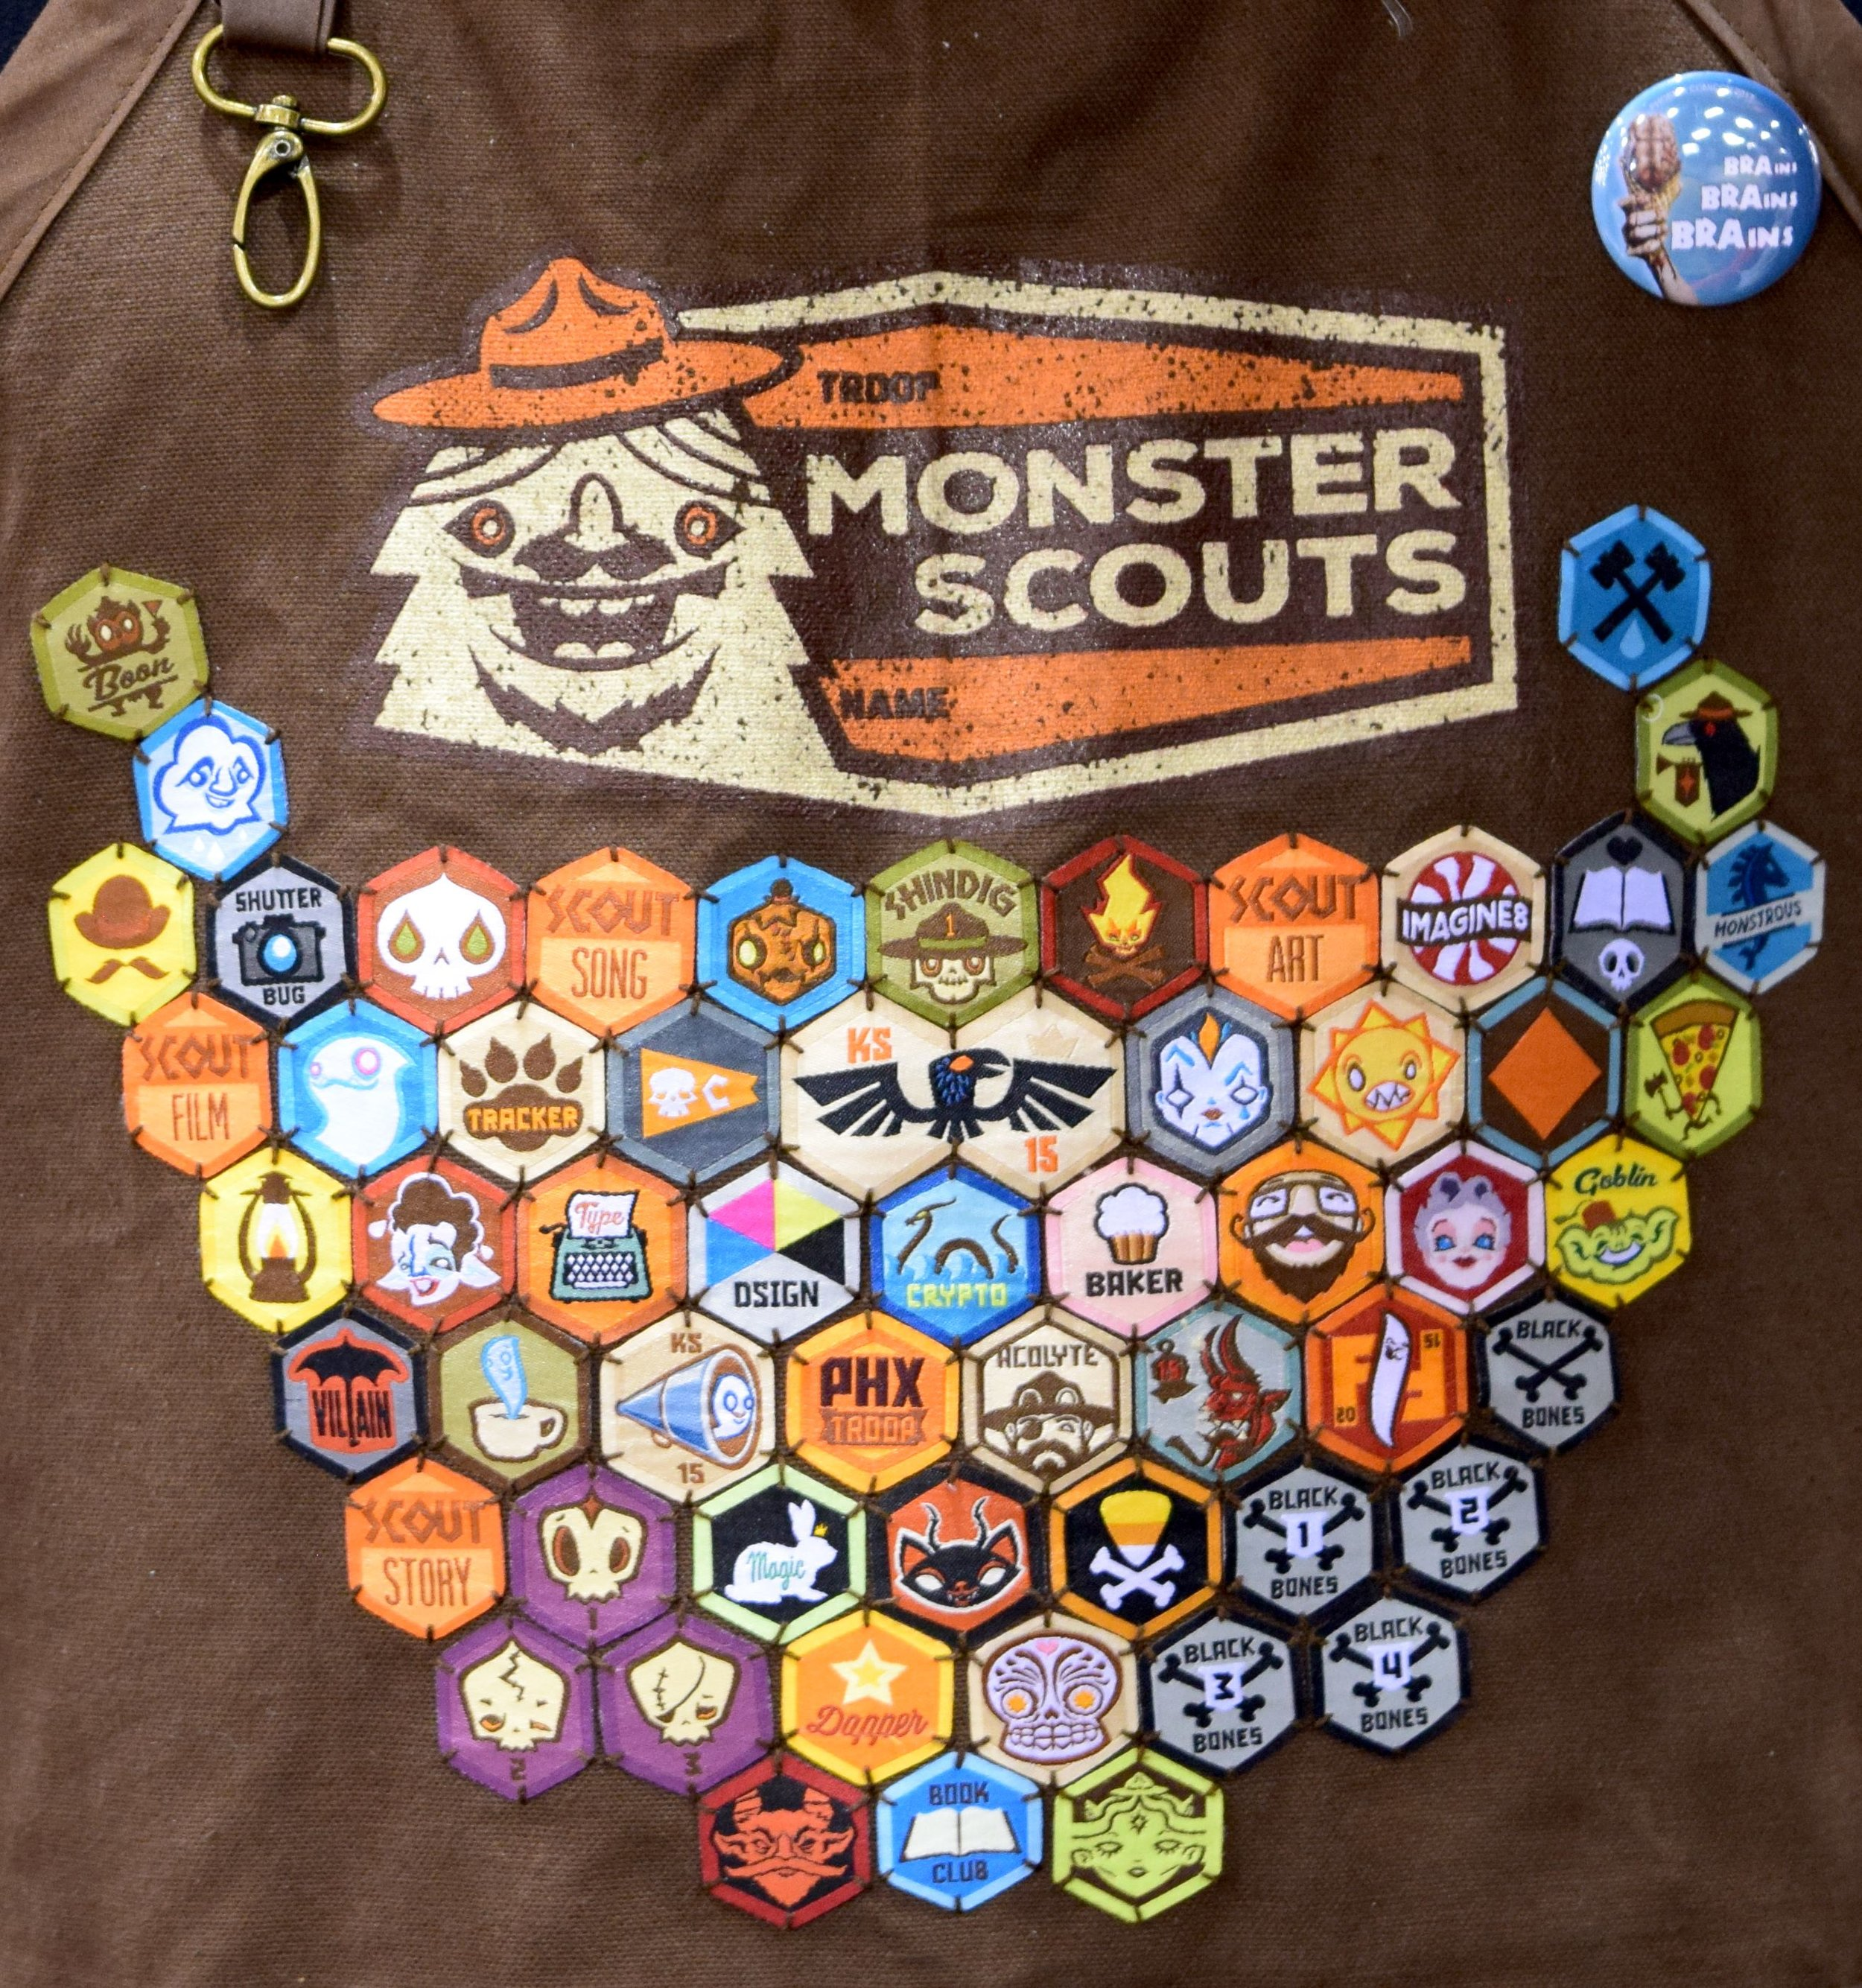 The Monster Scout badges worn by Daniel Monster Davis (detail).